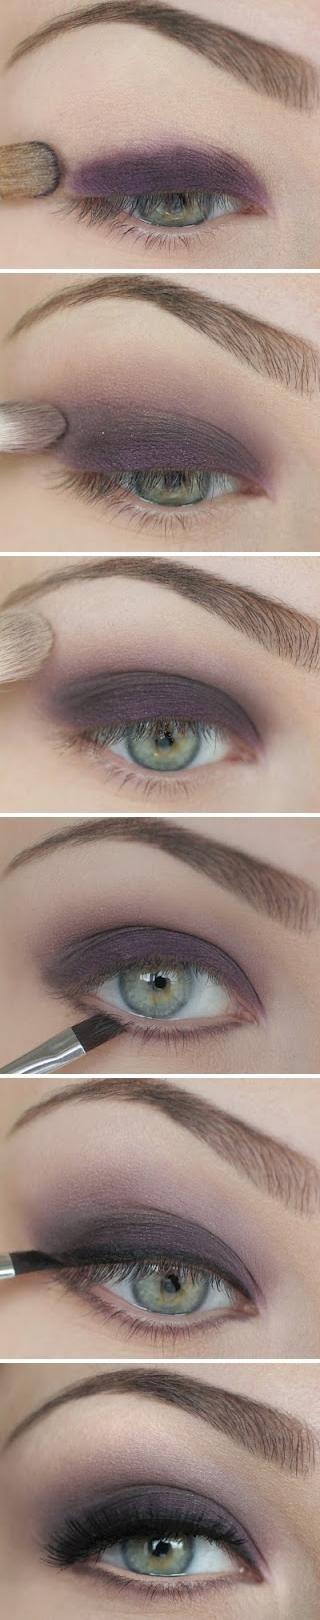 easy makeup tutorial for prom